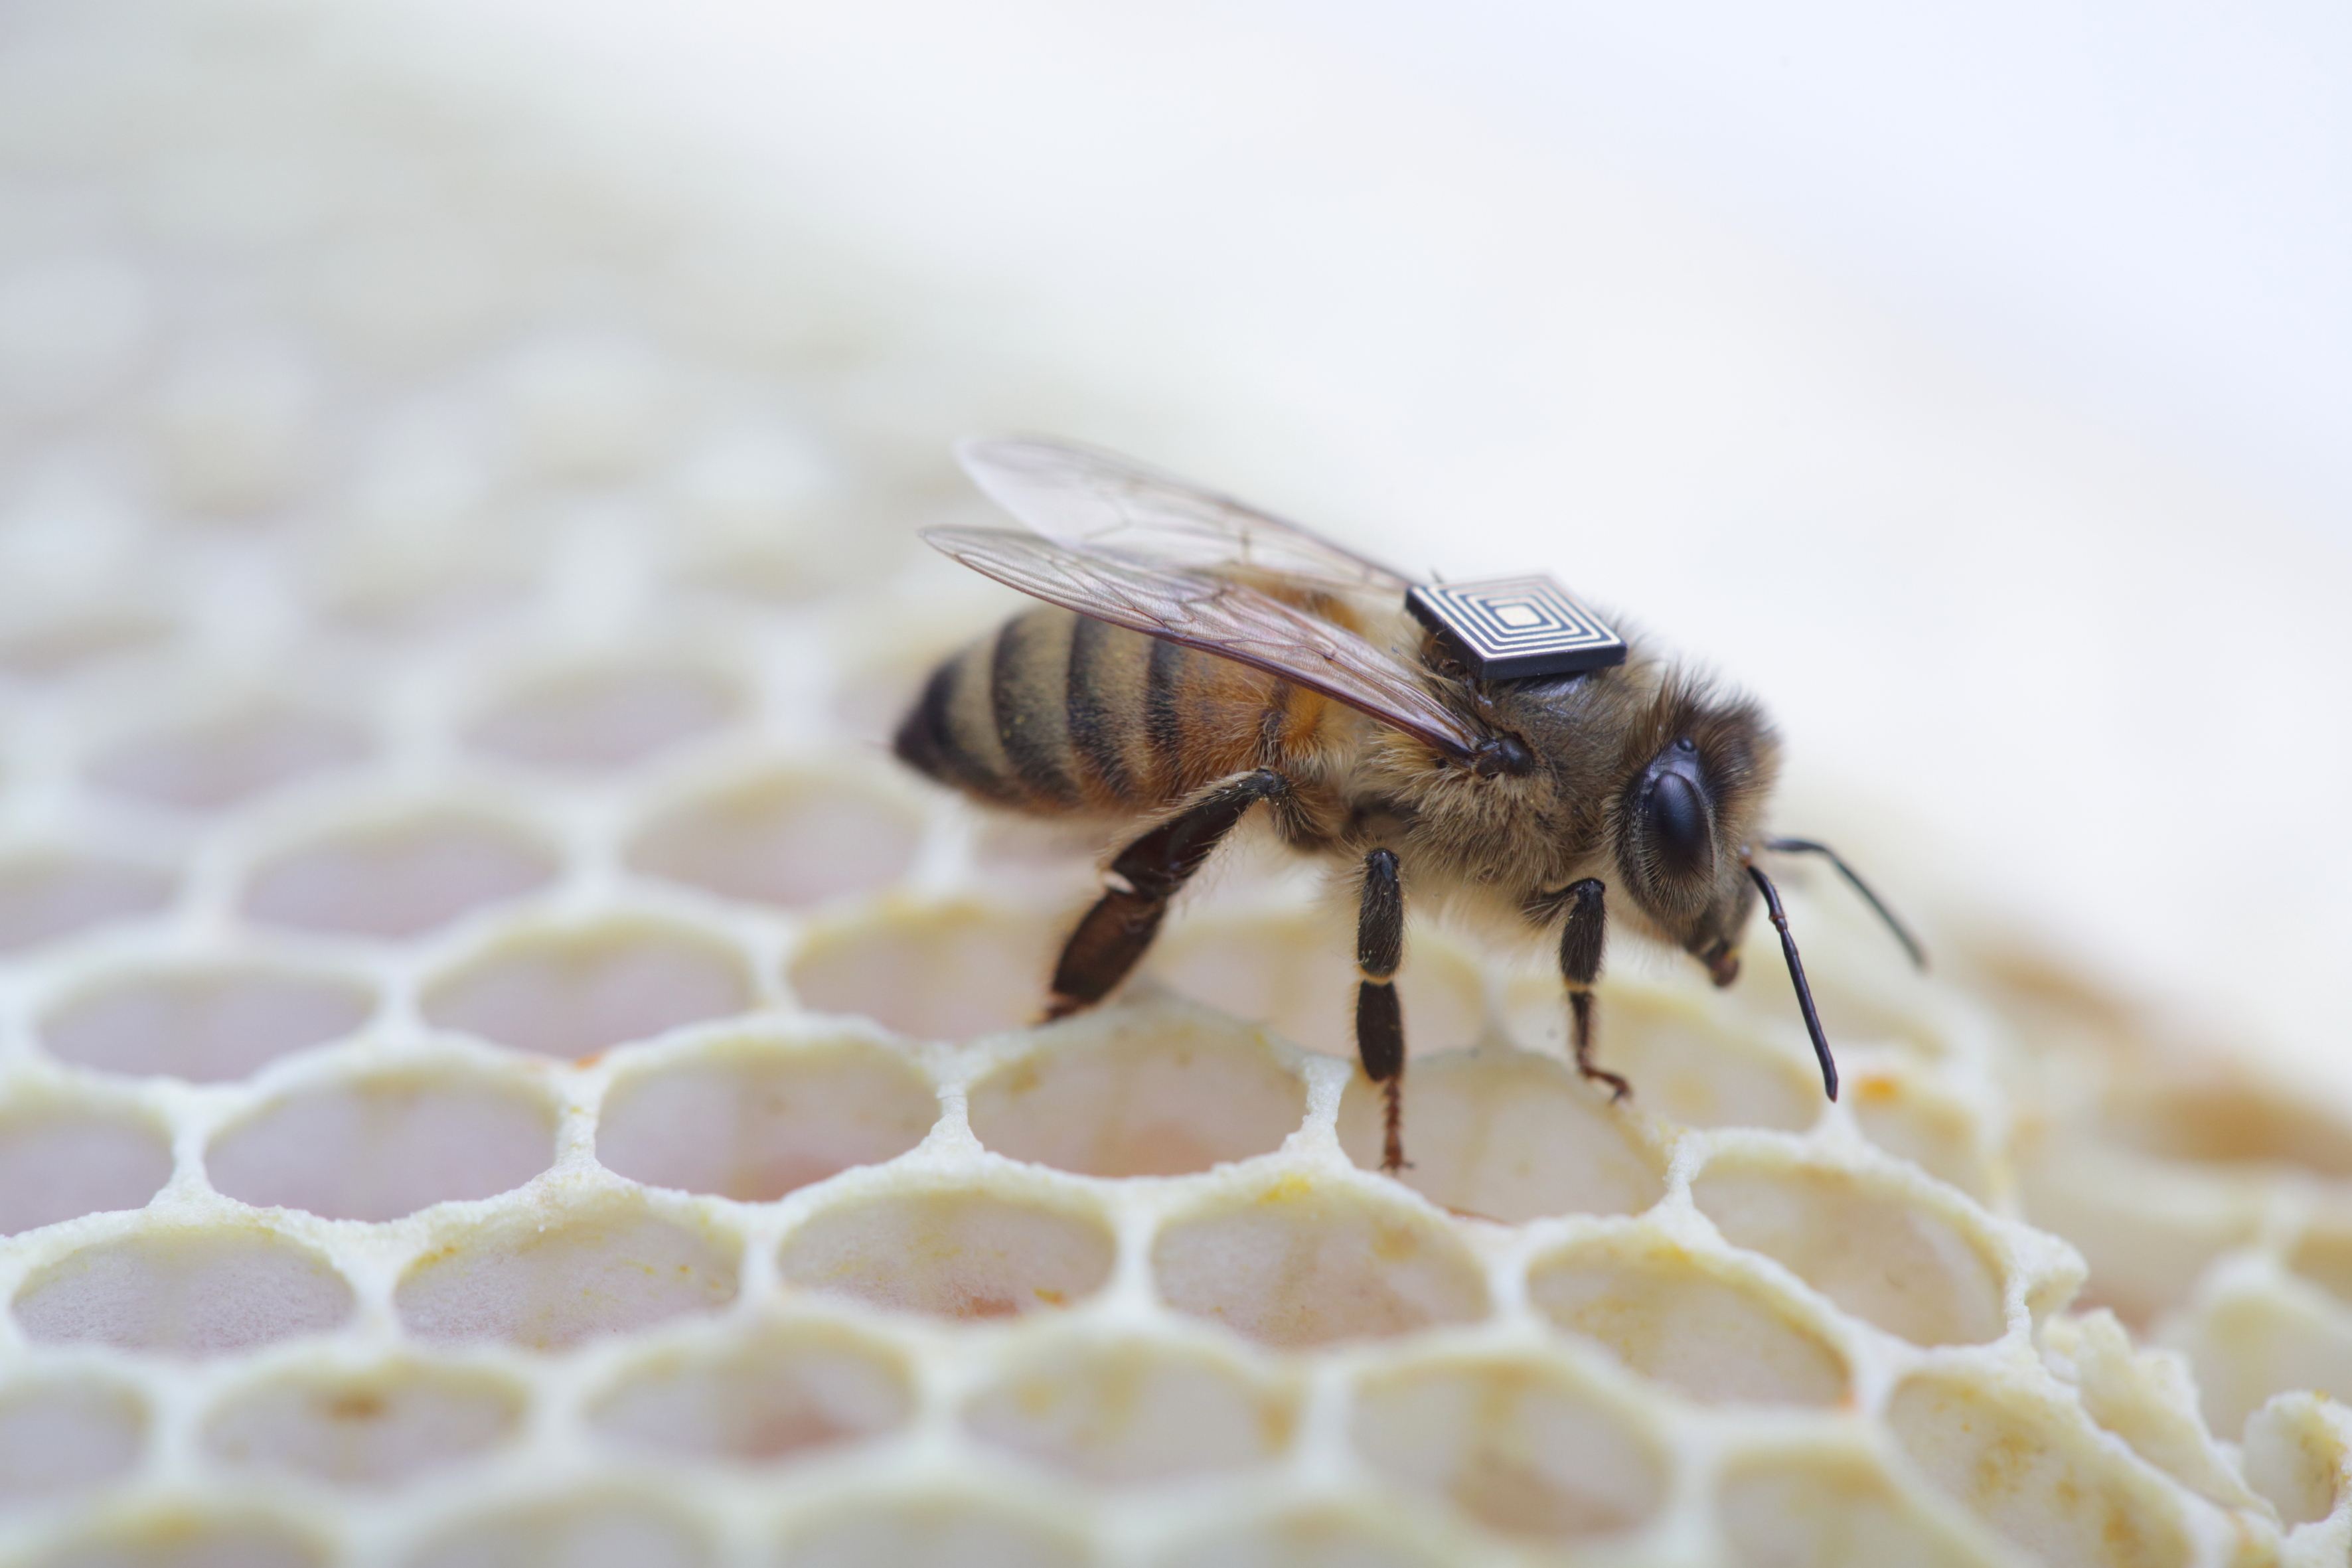 Research papers on bee communication